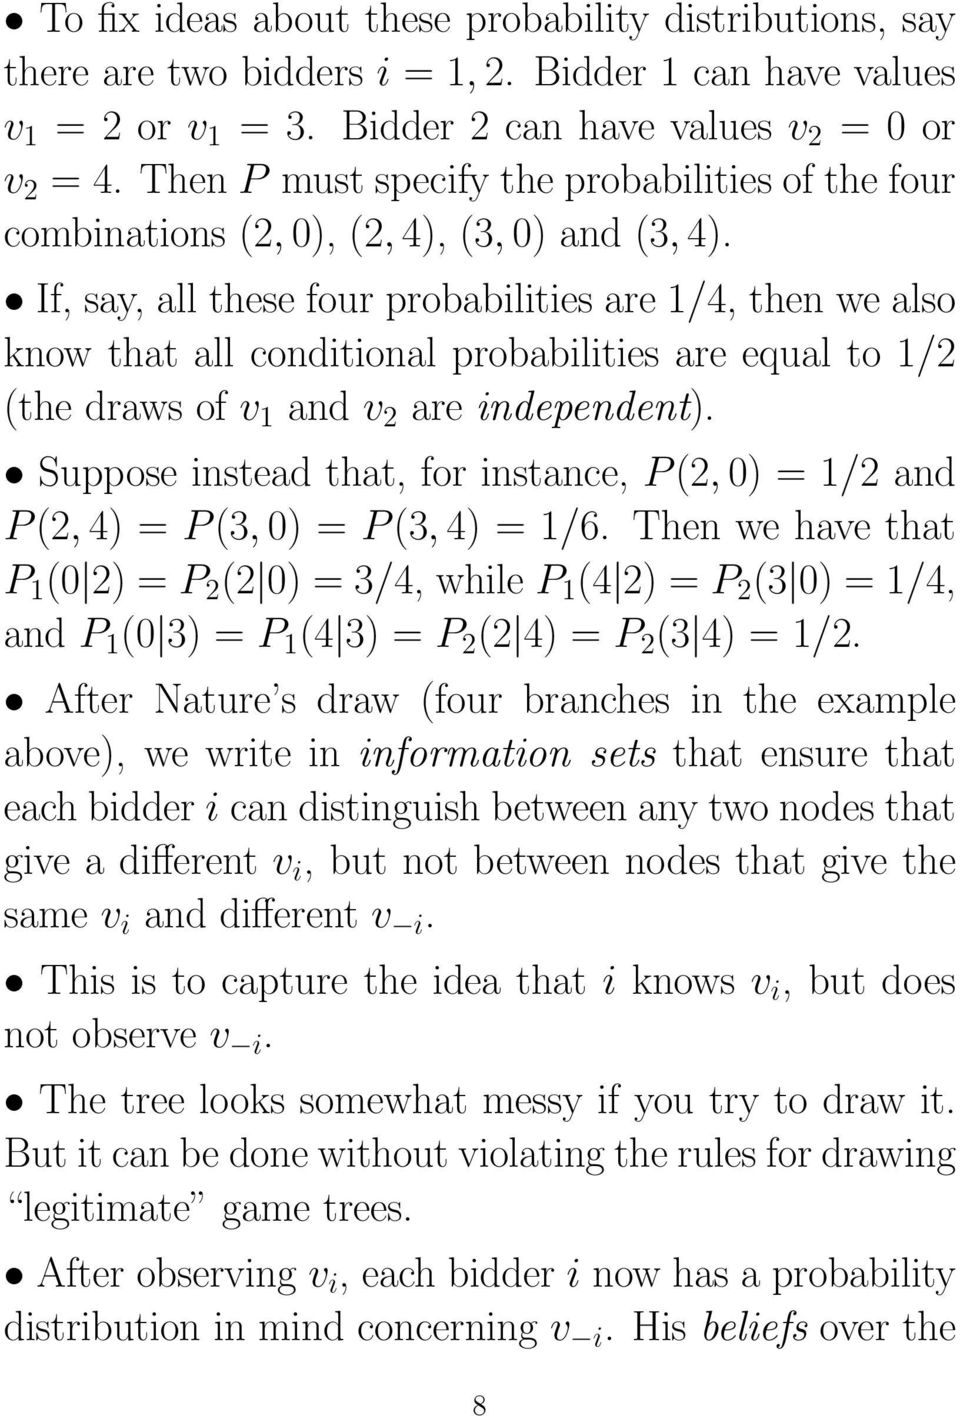 If, say, all these four probabilities are 1/4, then we also know that all conditional probabilities are equal to 1/2 (the draws of v 1 and v 2 are independent).